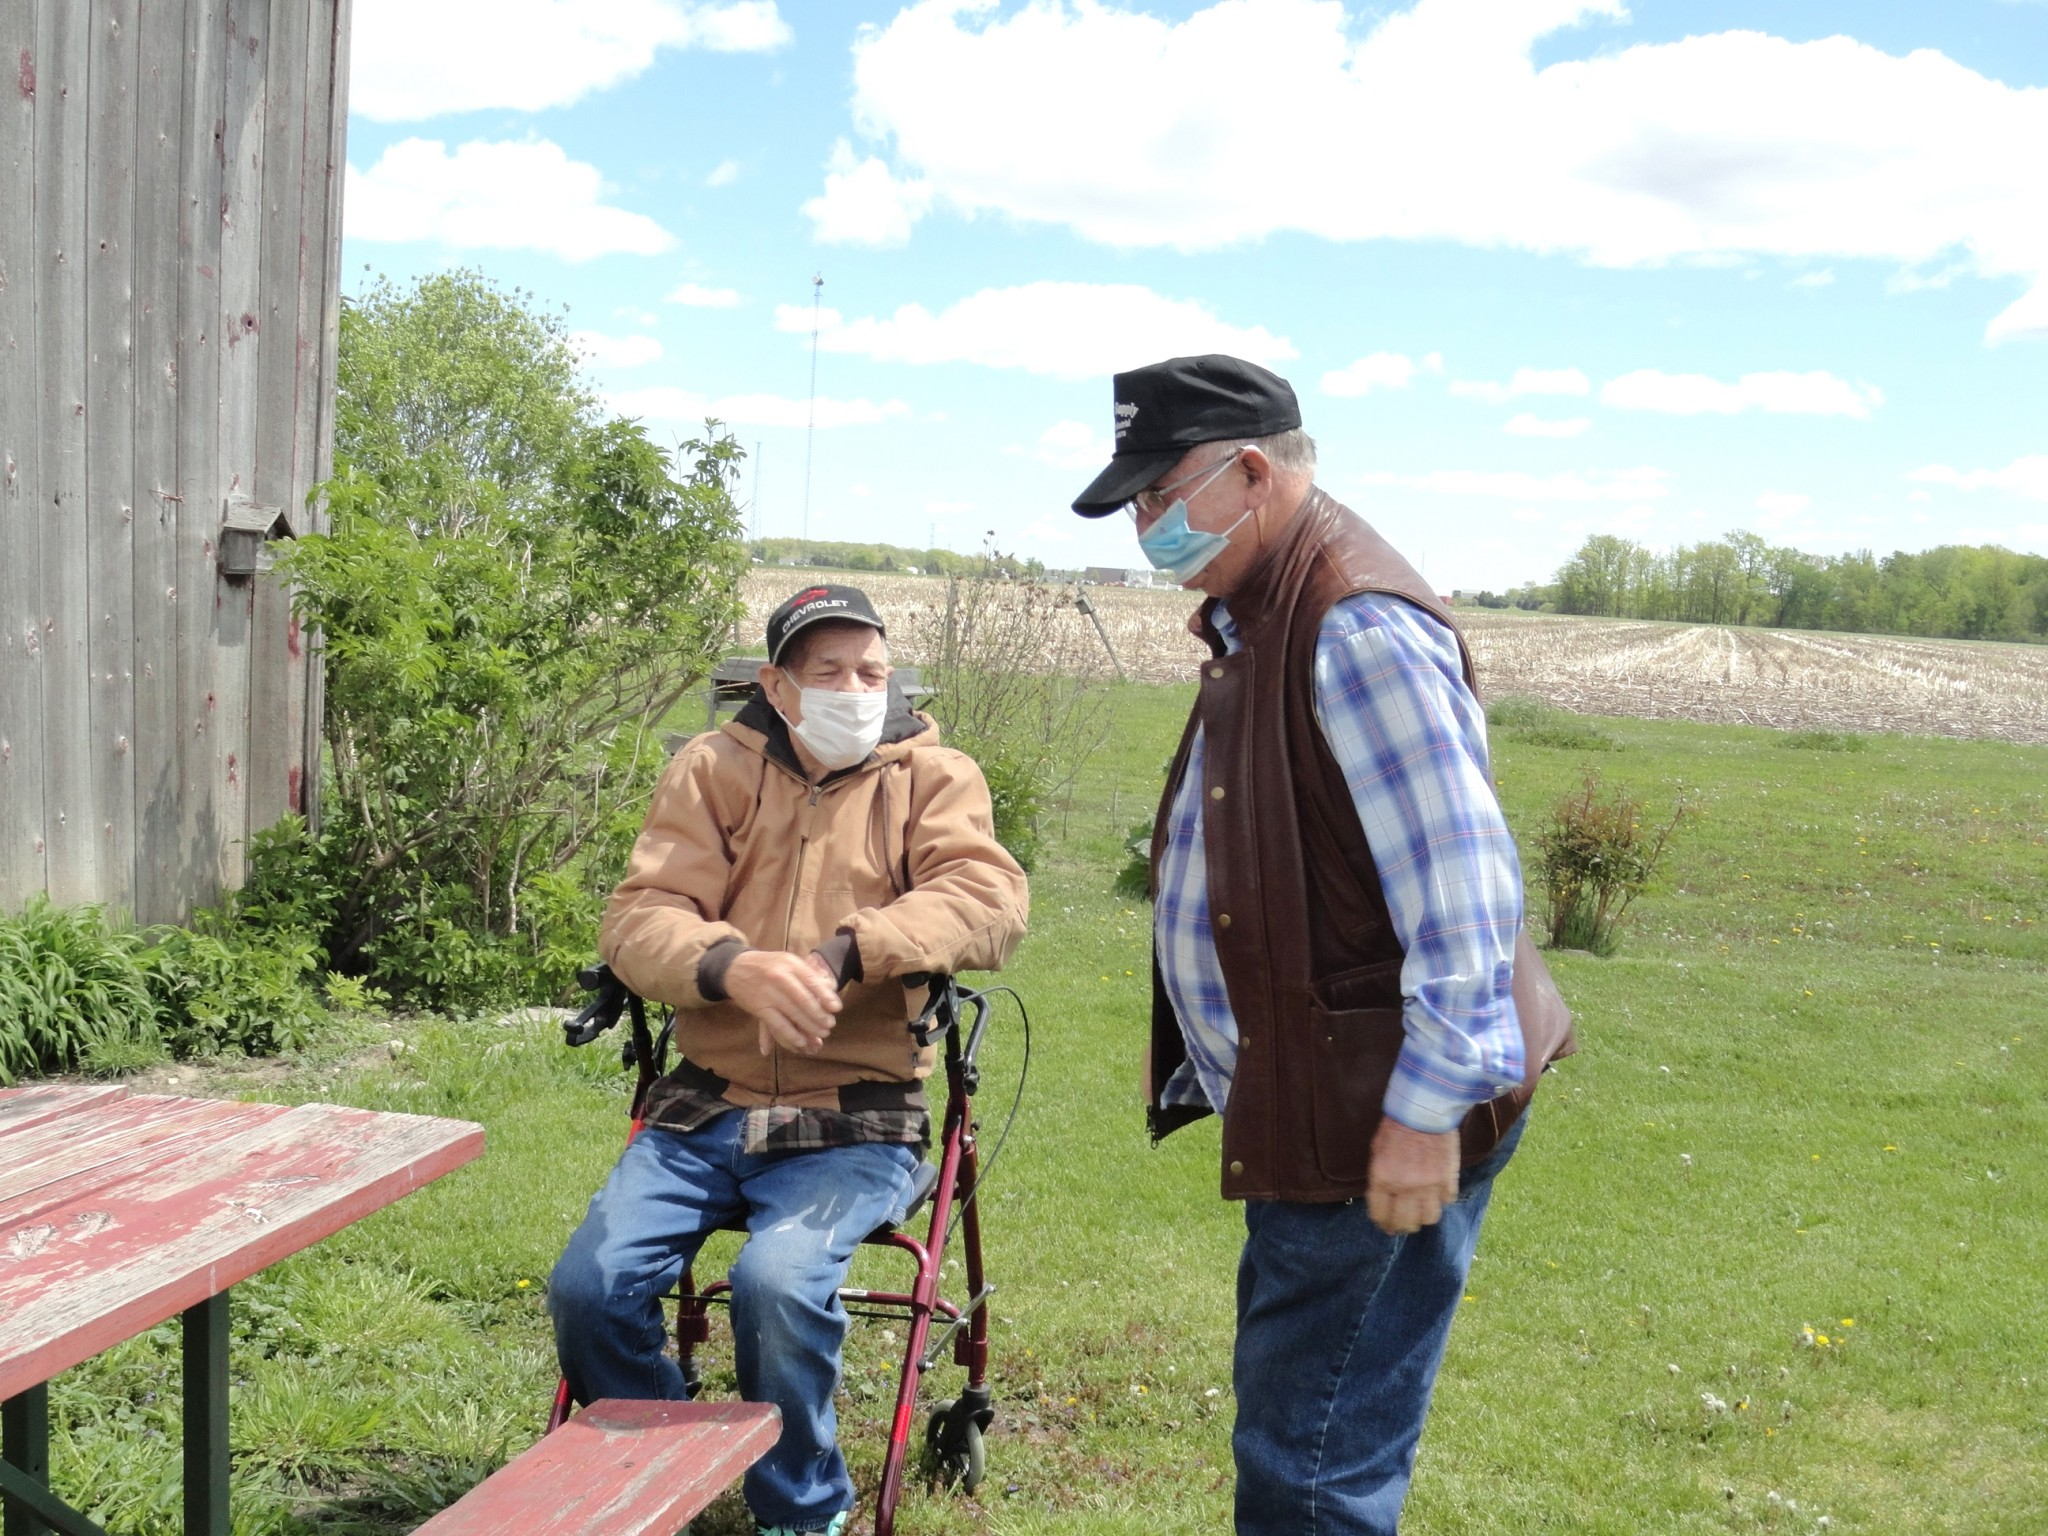 Half-brothers Bernie Smith, (left) who resides just outside of Martin, and Ralph Carpenter, of Spencer, West Virginia, met for the first time on May 11. (Submitted photo)